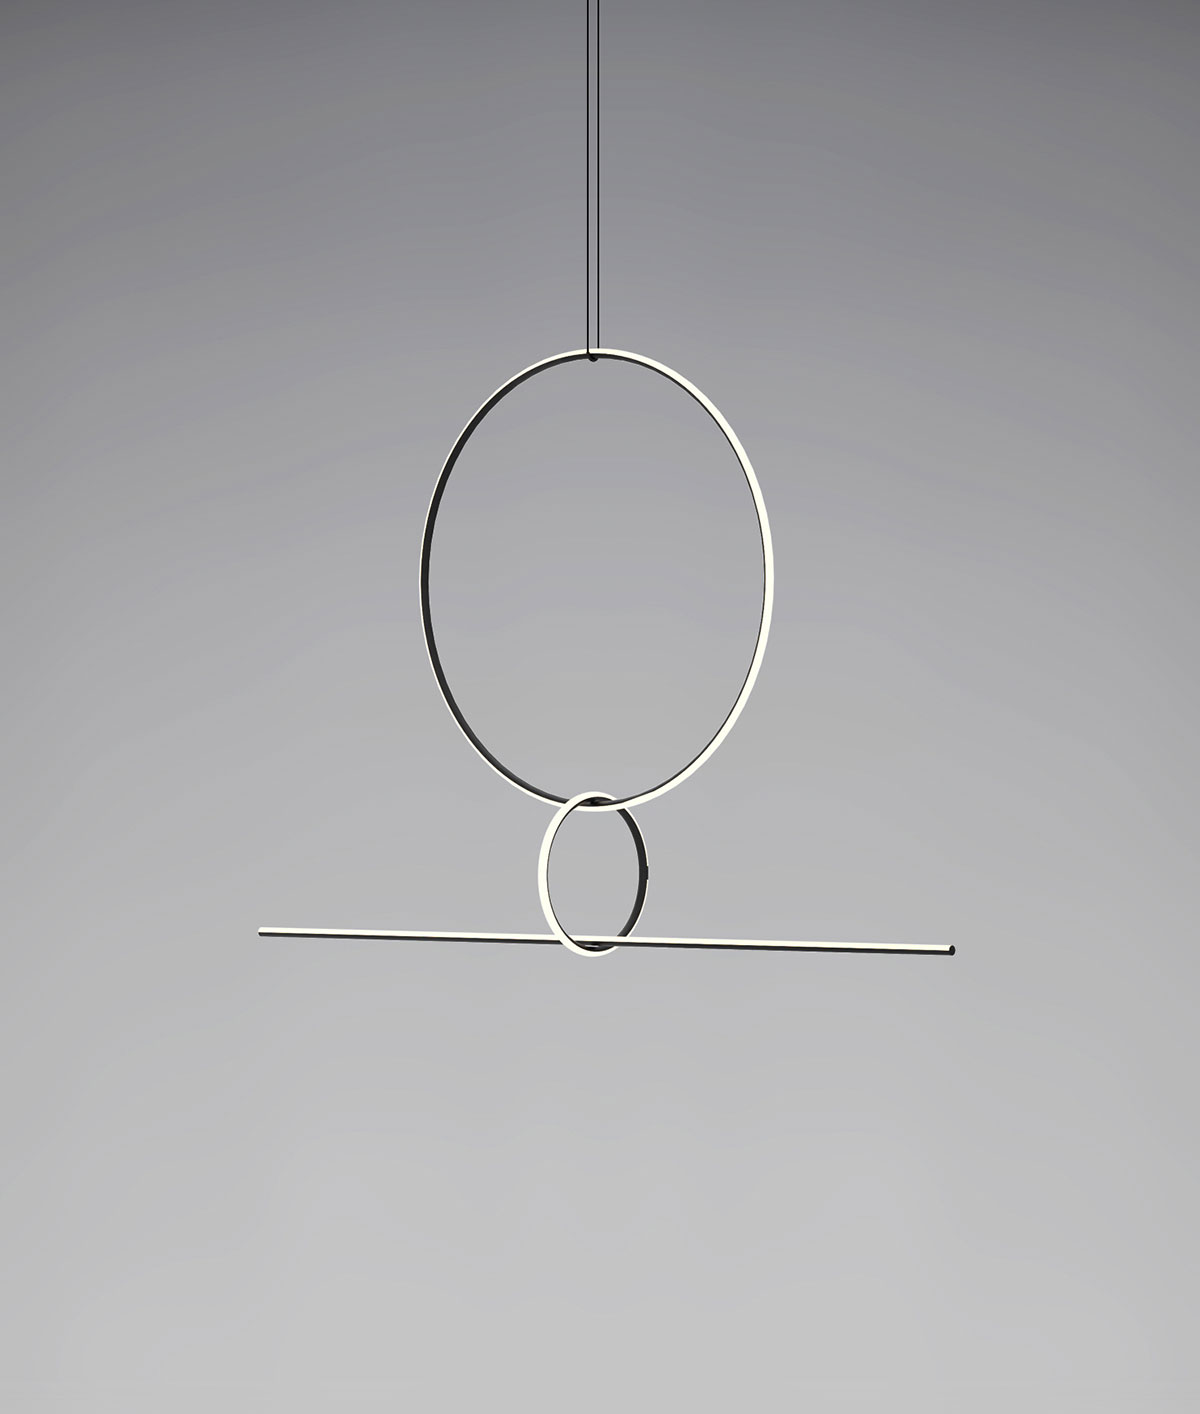 Arrangements lighting series by Michael Anastassiades for FLOS.